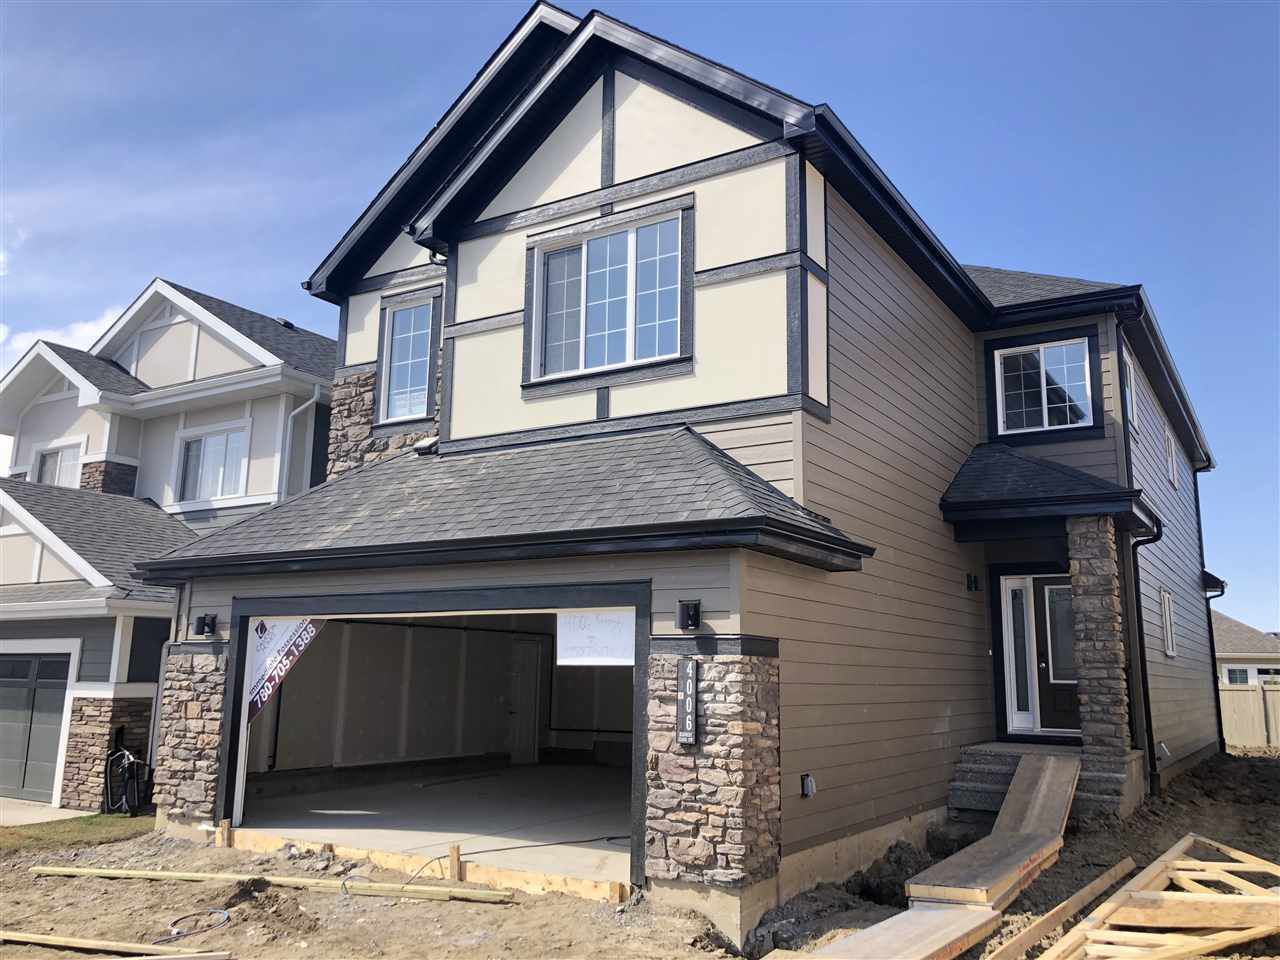 Main Photo: 4006 KENNEDY Close in Edmonton: Zone 56 House for sale : MLS®# E4154628